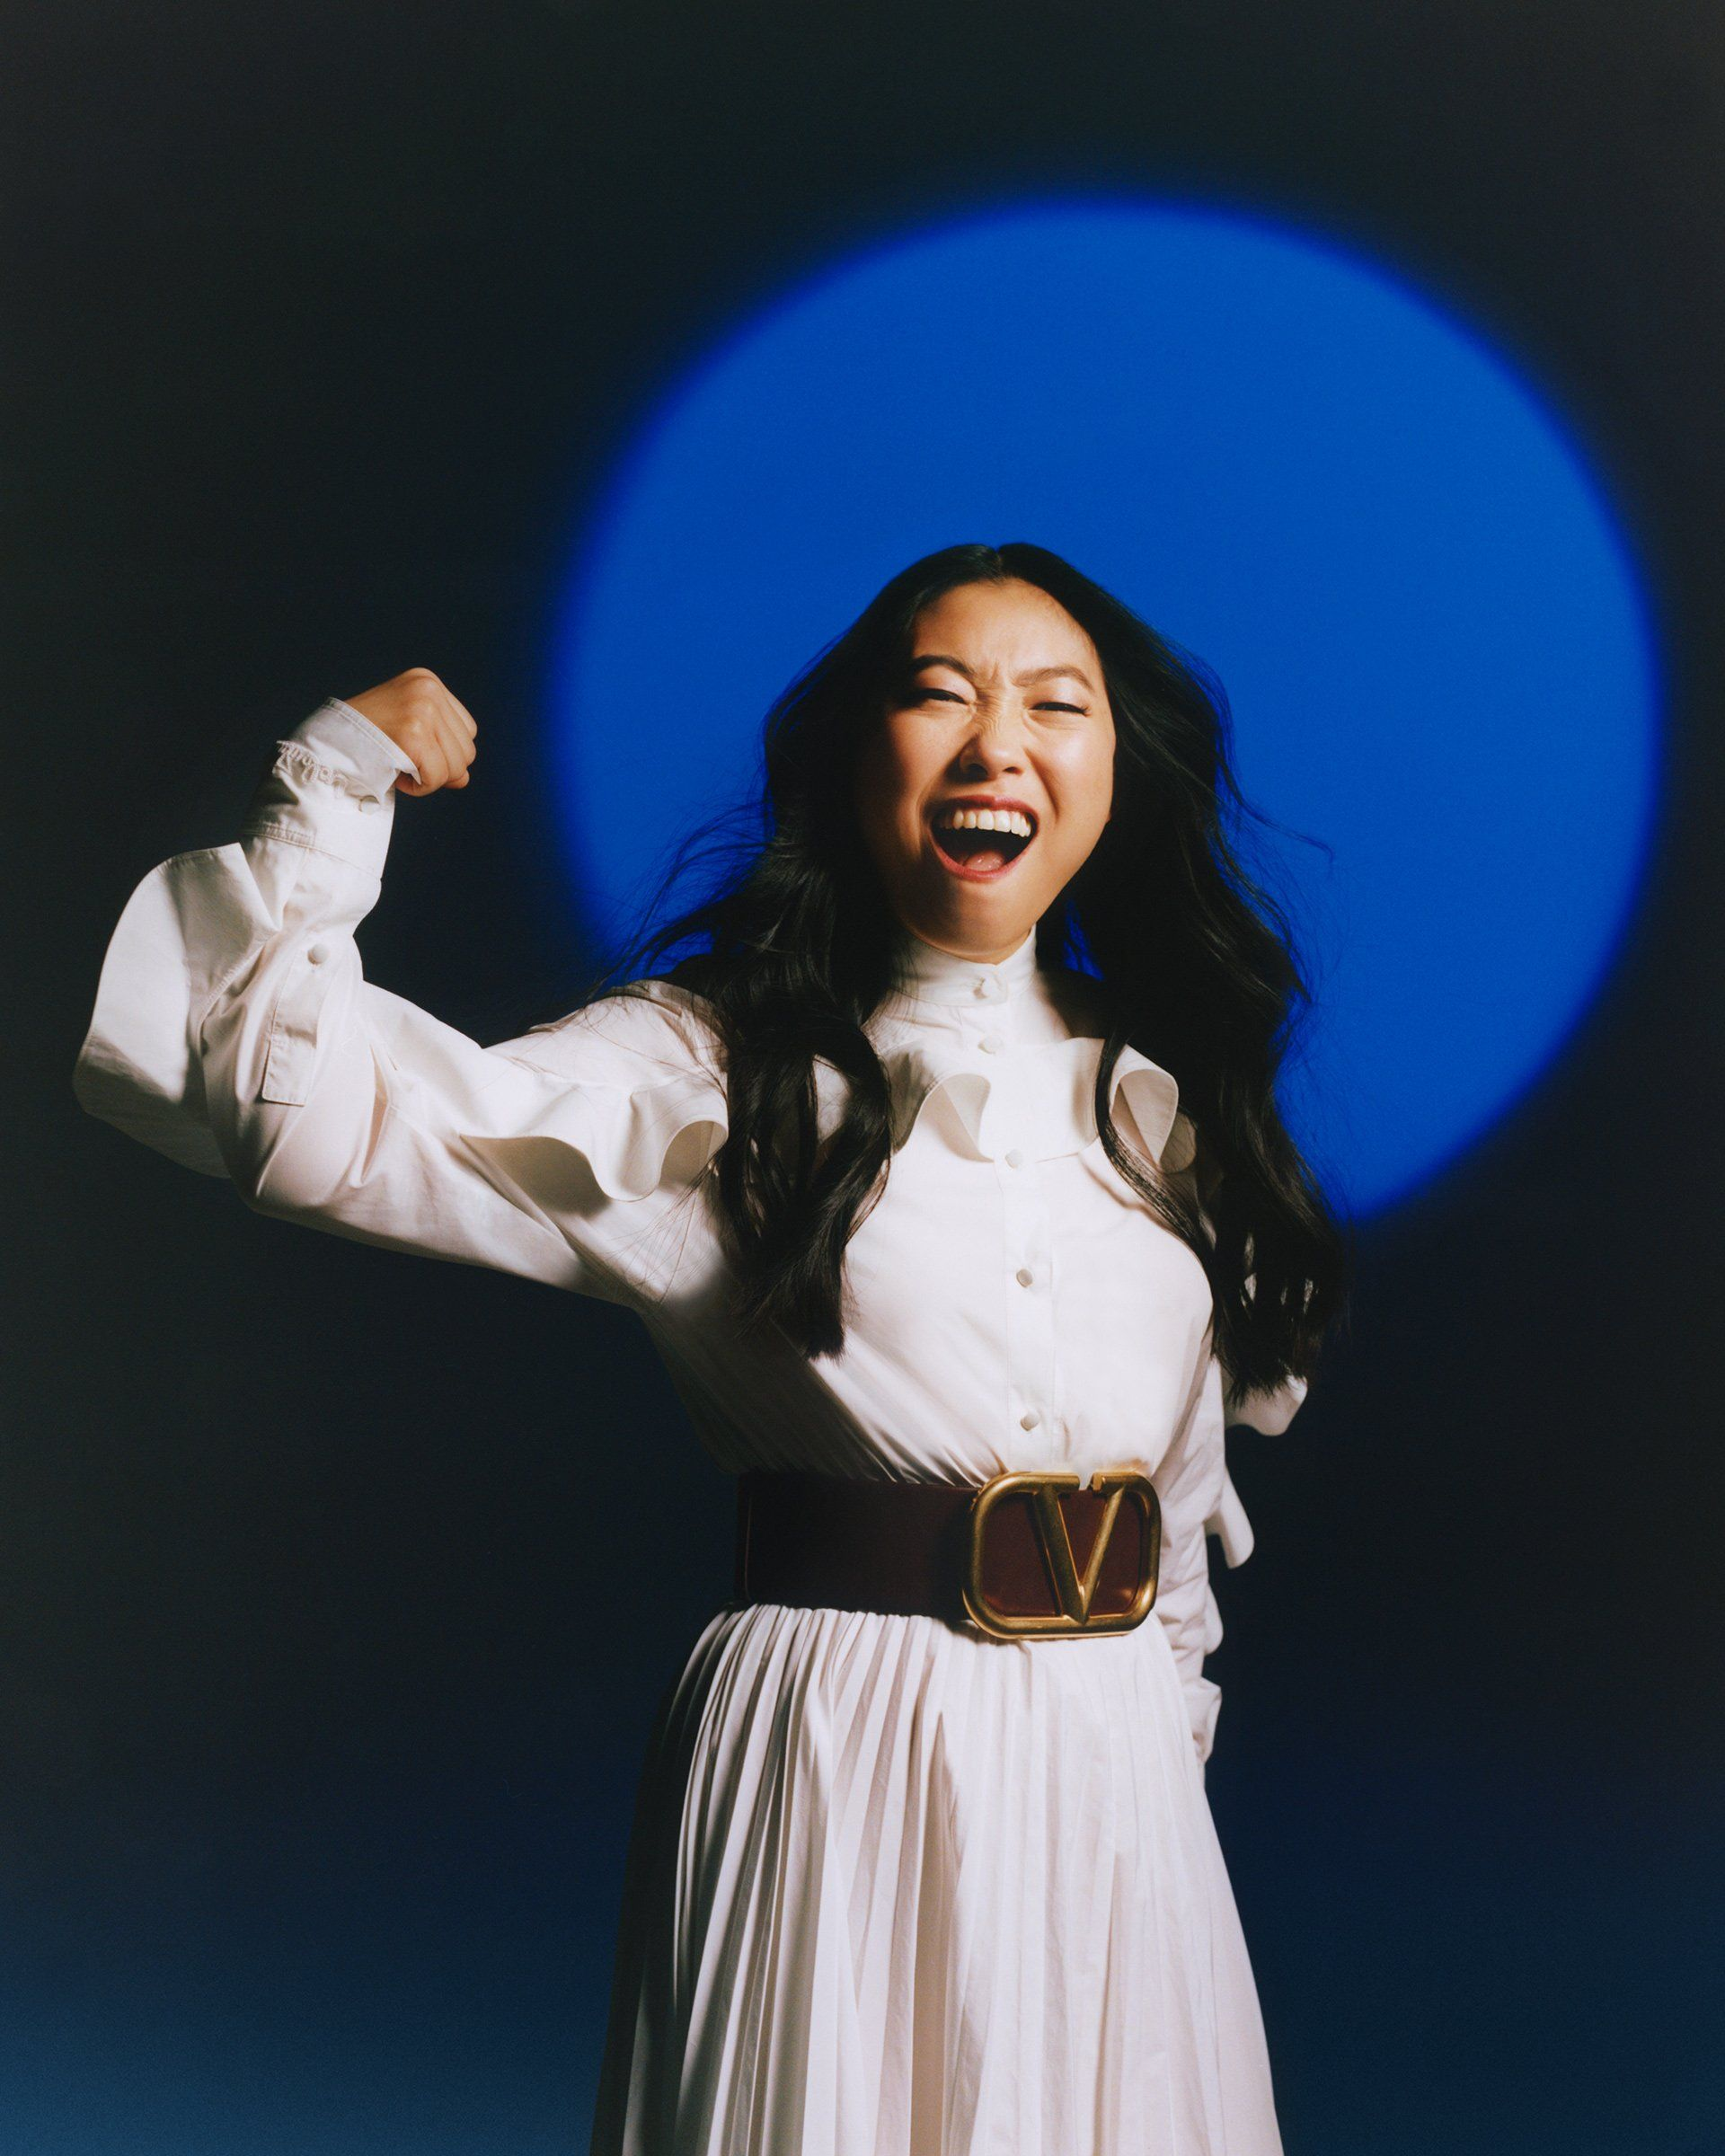 TIME 100 Next 2019: Awkwafina Awkwafina Is on the